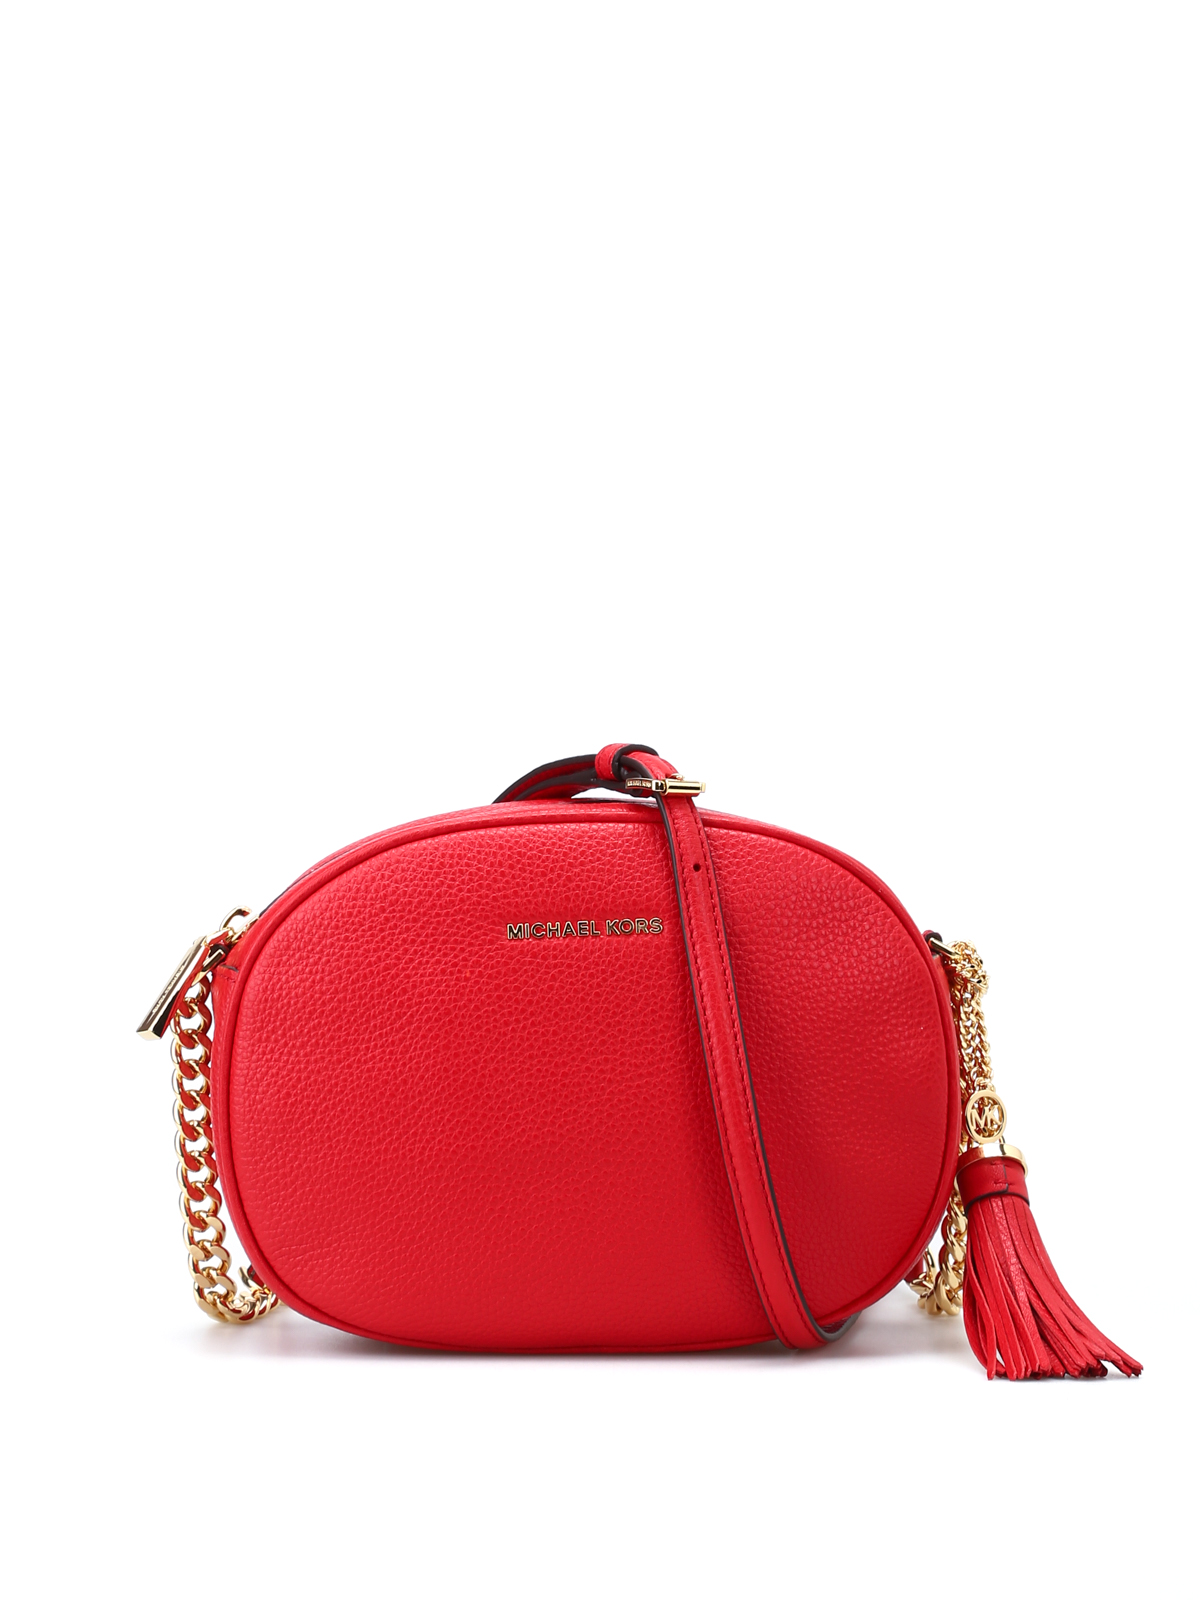 09a8e39195b9 Michael Kors - Ginny bright red leather crossbody - cross body bags ...